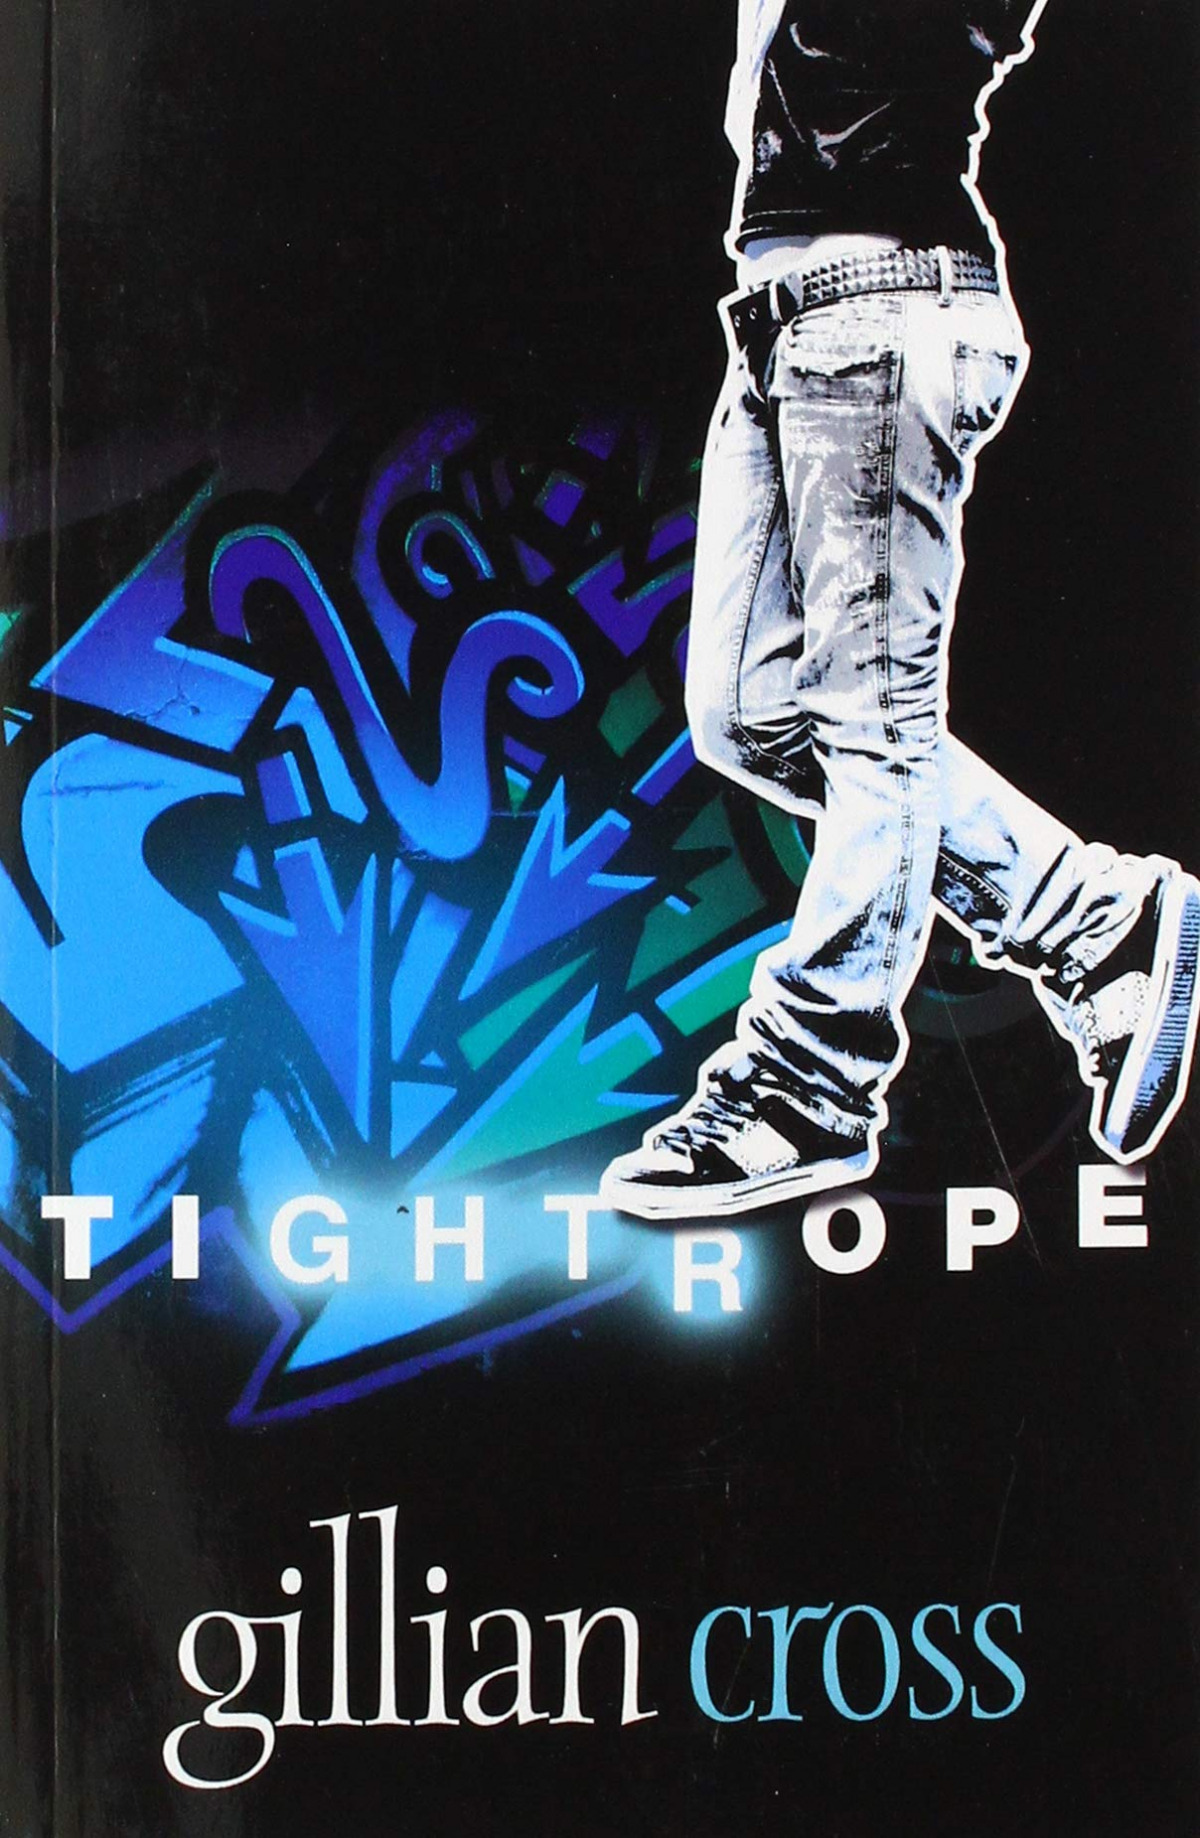 ROLLERCASTERS:TIGHTROPE